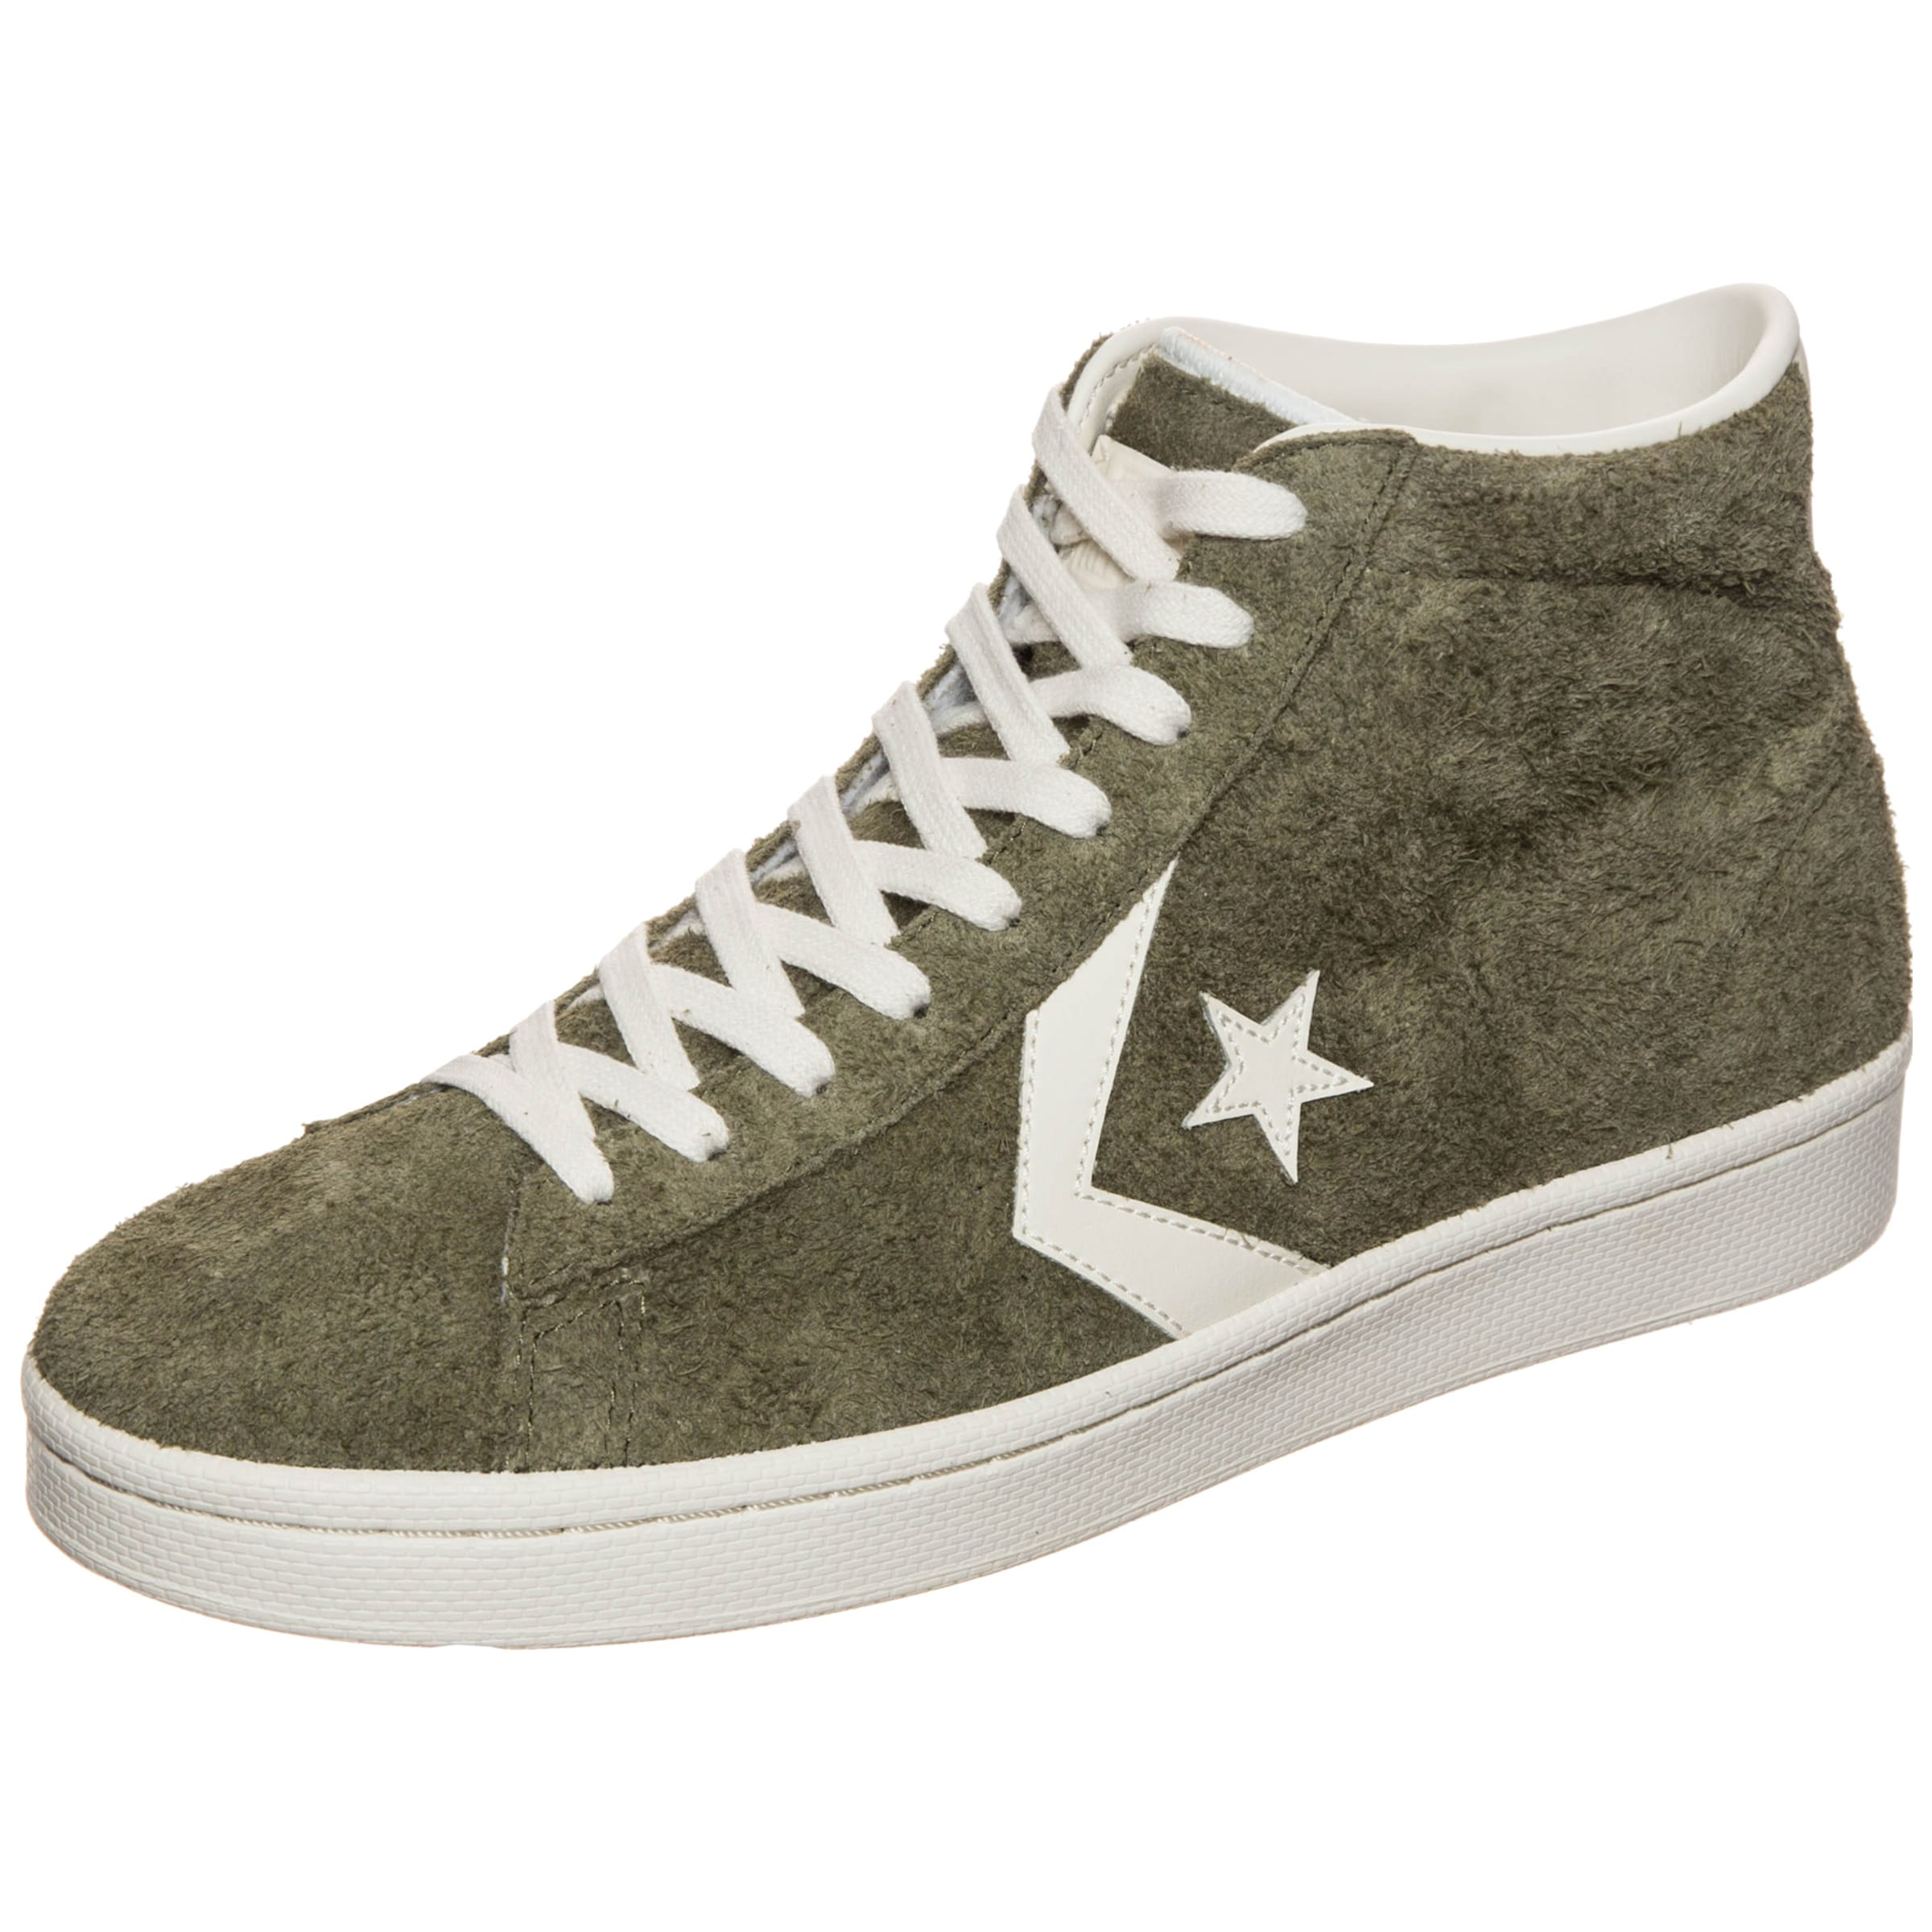 CONVERSE Pro Leather Mid Sneaker Hohe Qualität